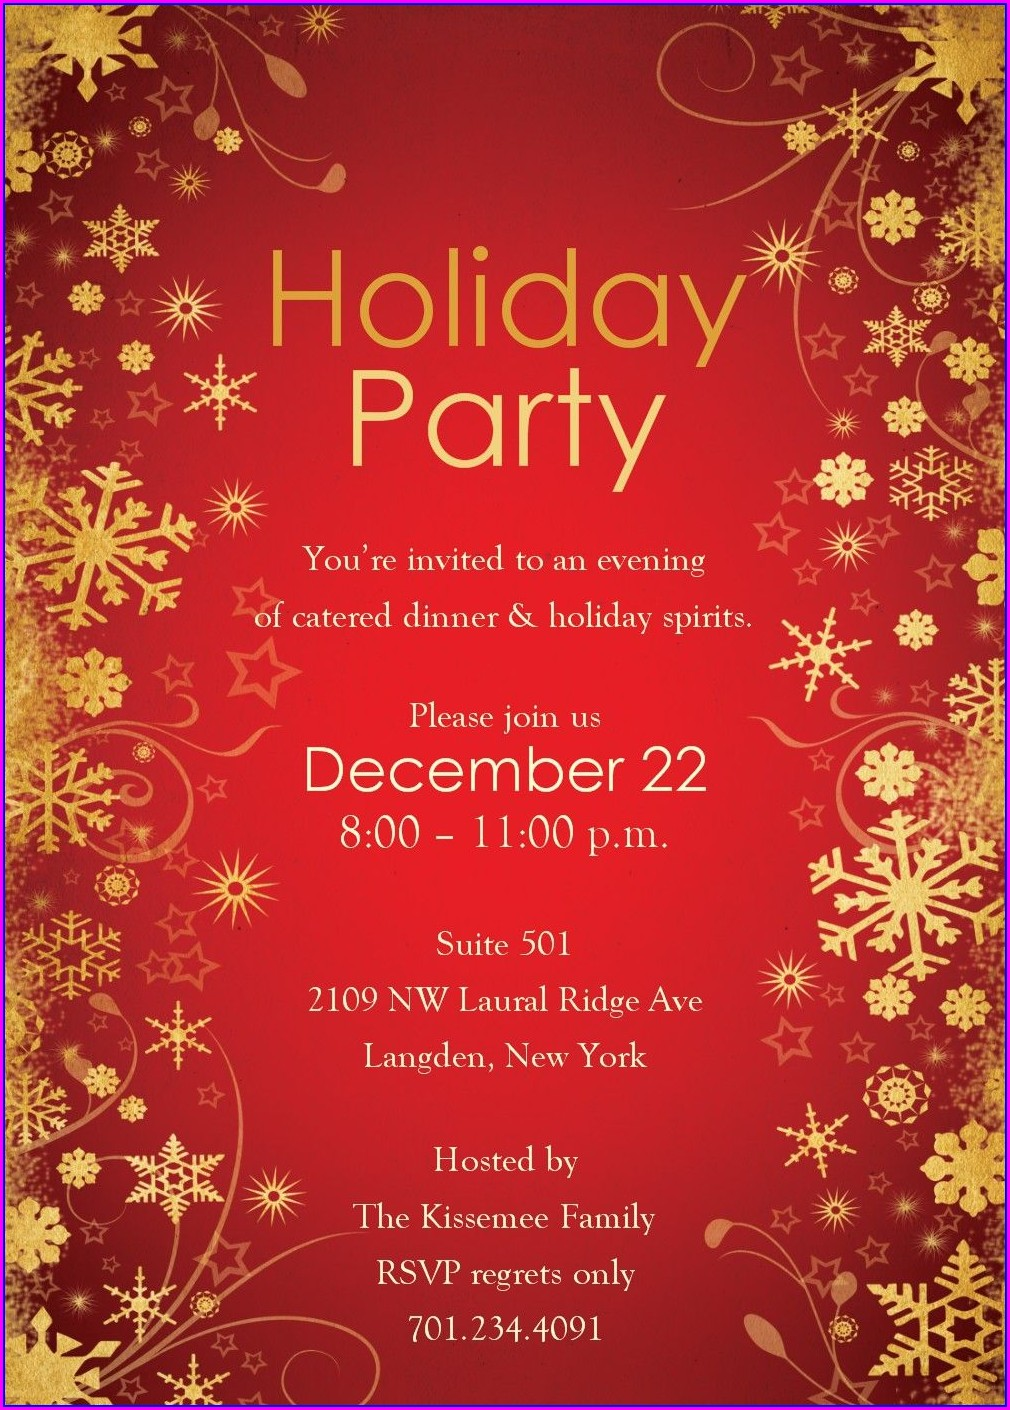 Office Holiday Party Invitation Template Free